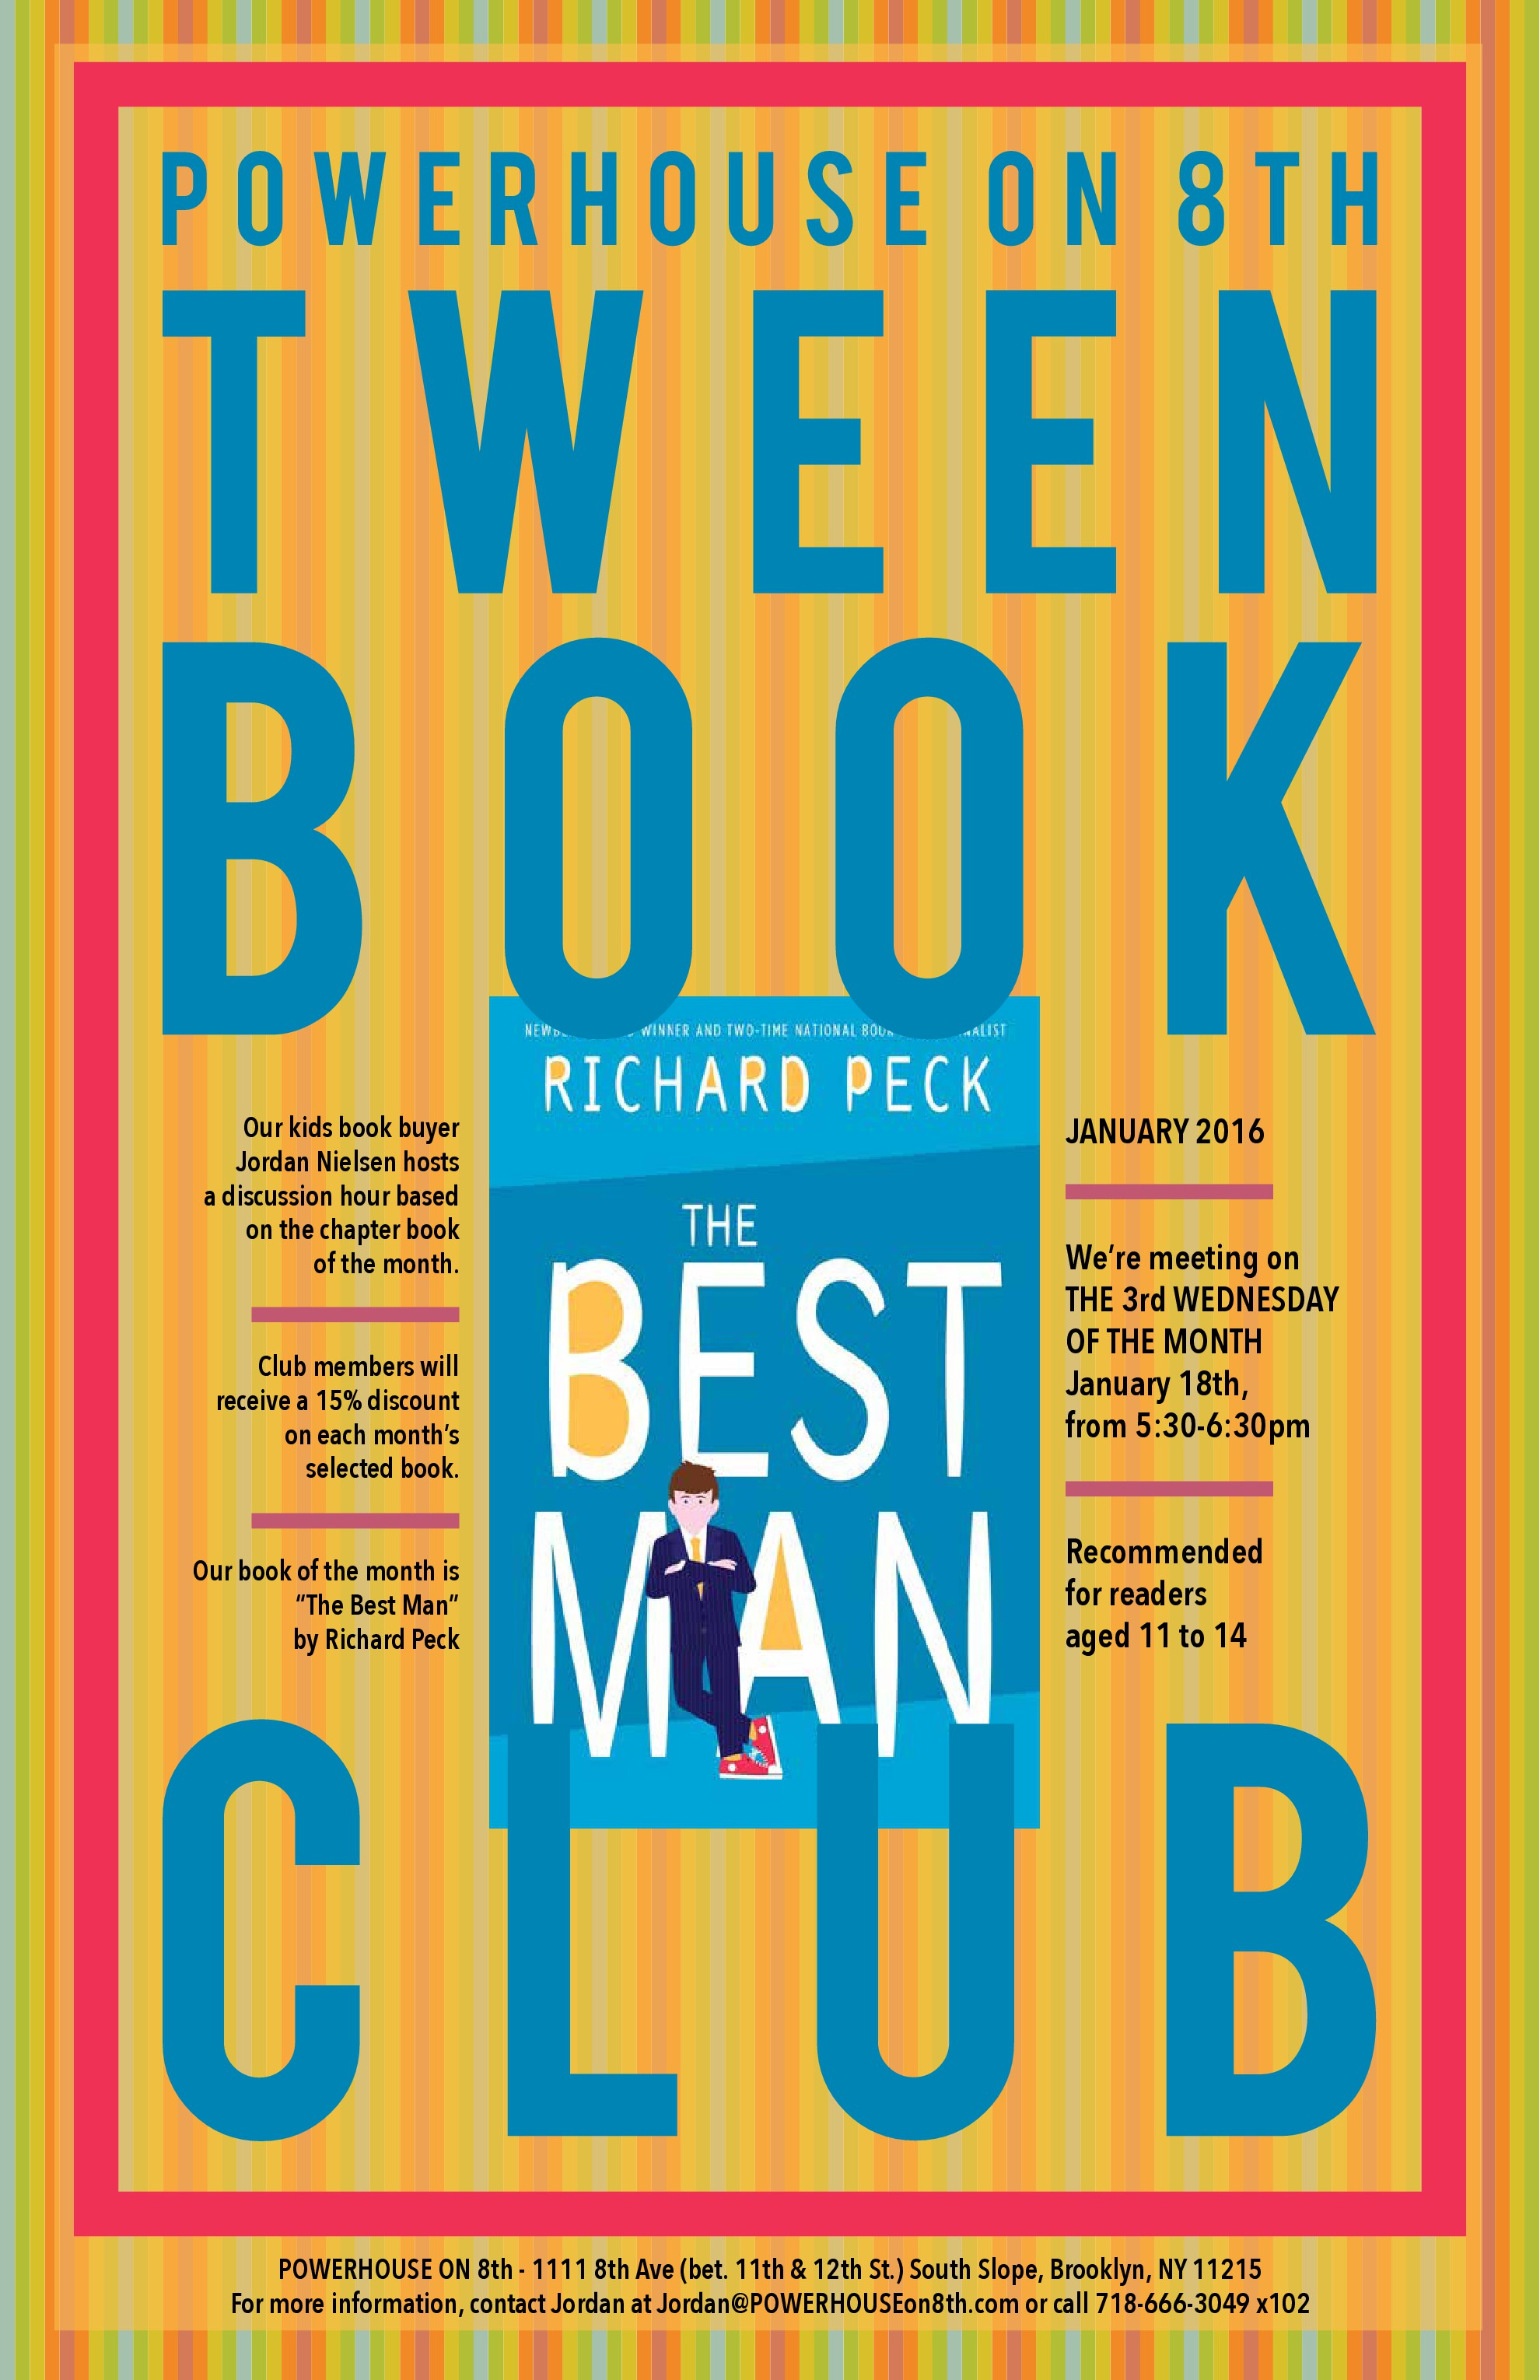 Tween Book Club: The Best Man by Richard Peck